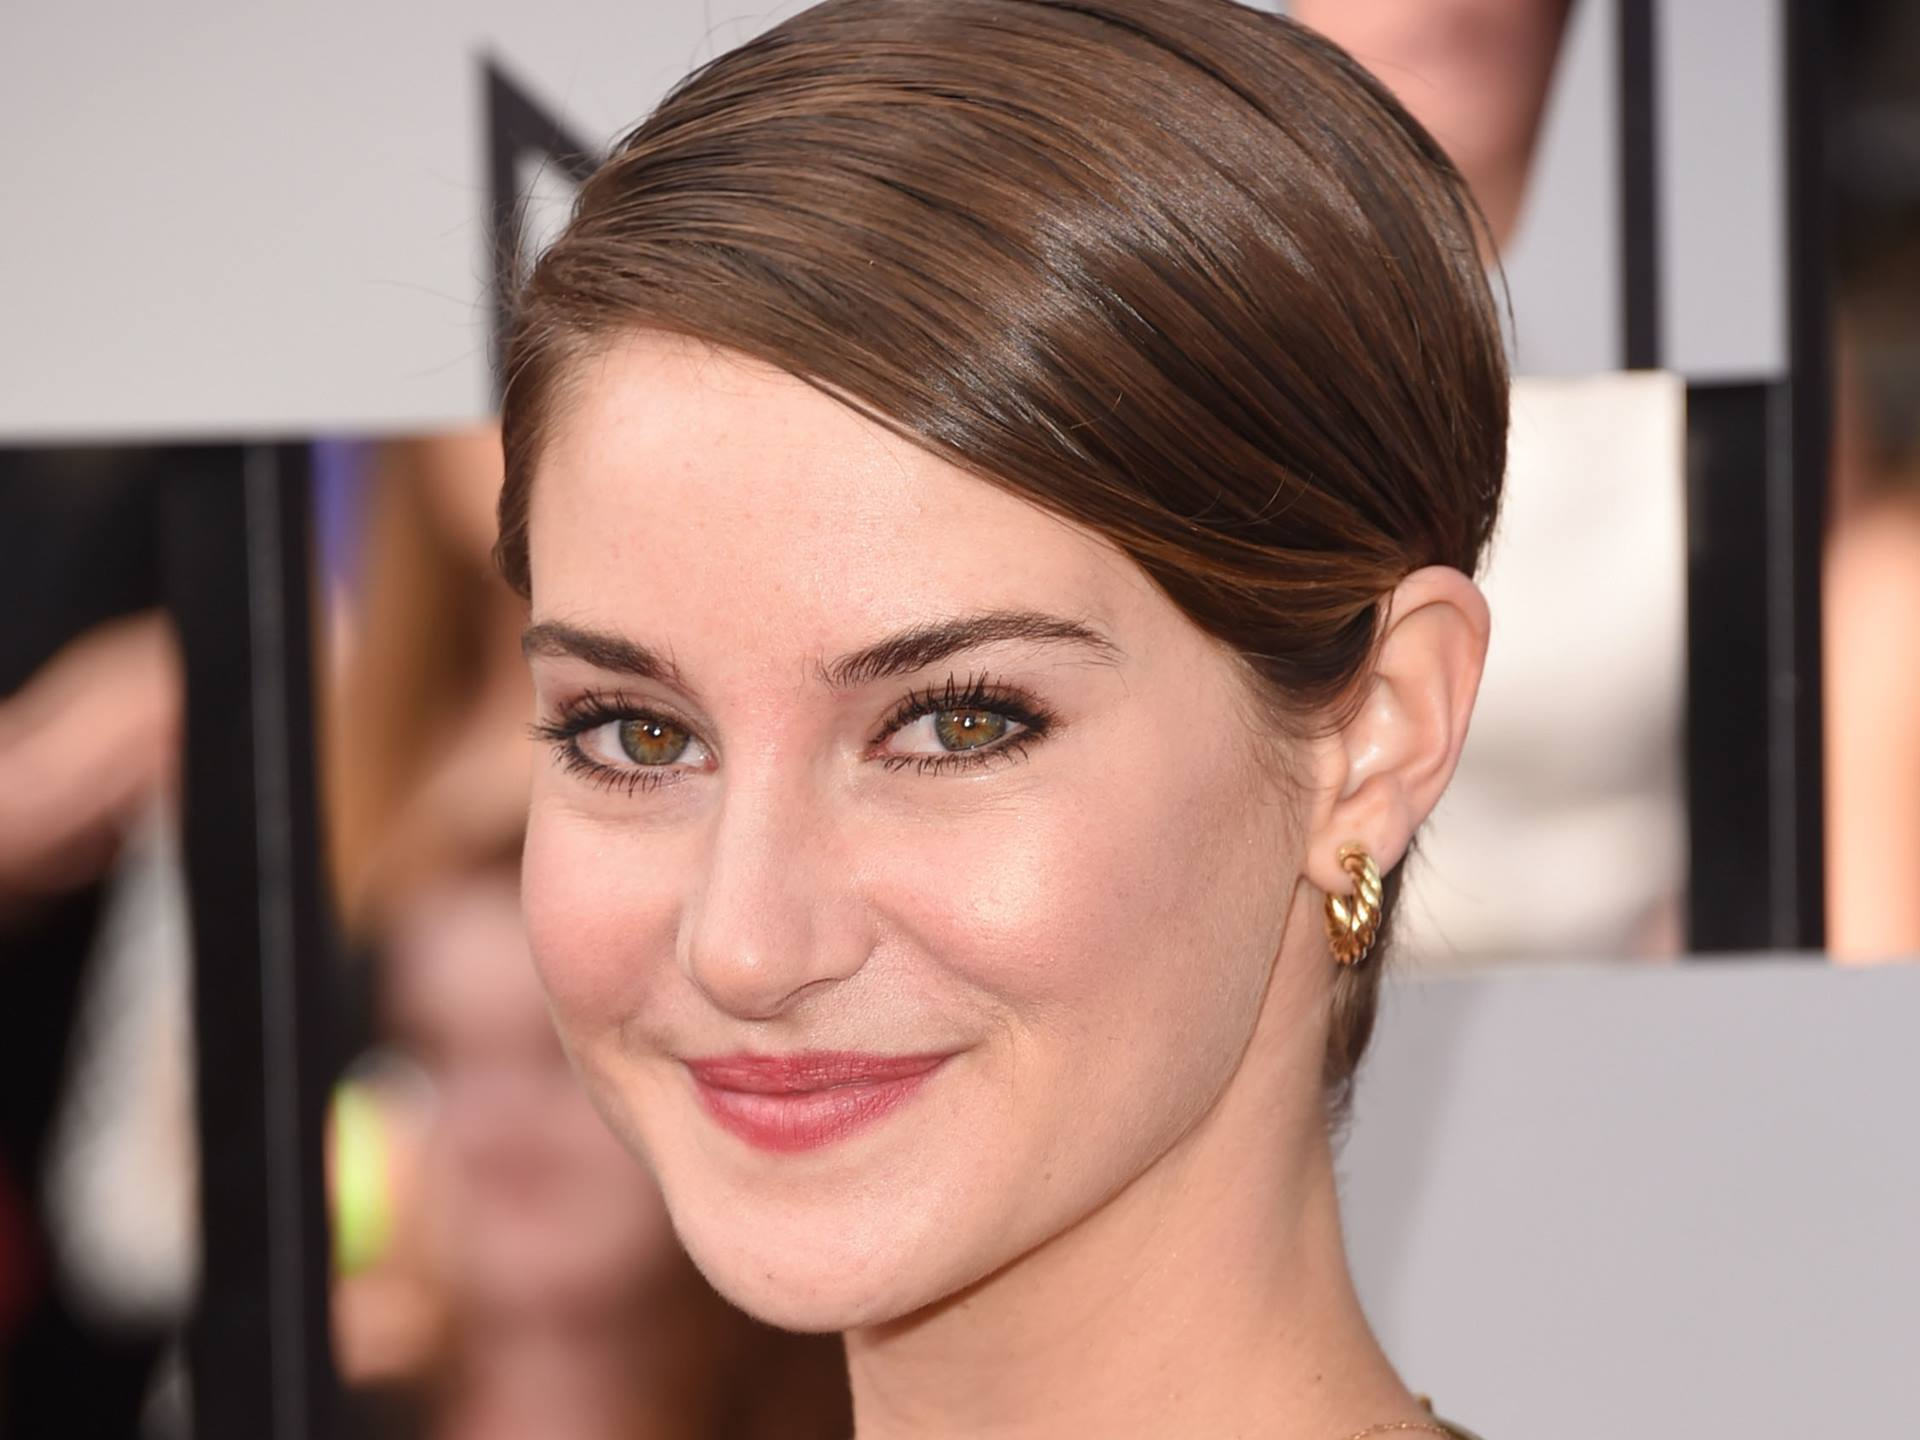 Download Hd Exclusive Shailene Woodley Desktop Wallpapers